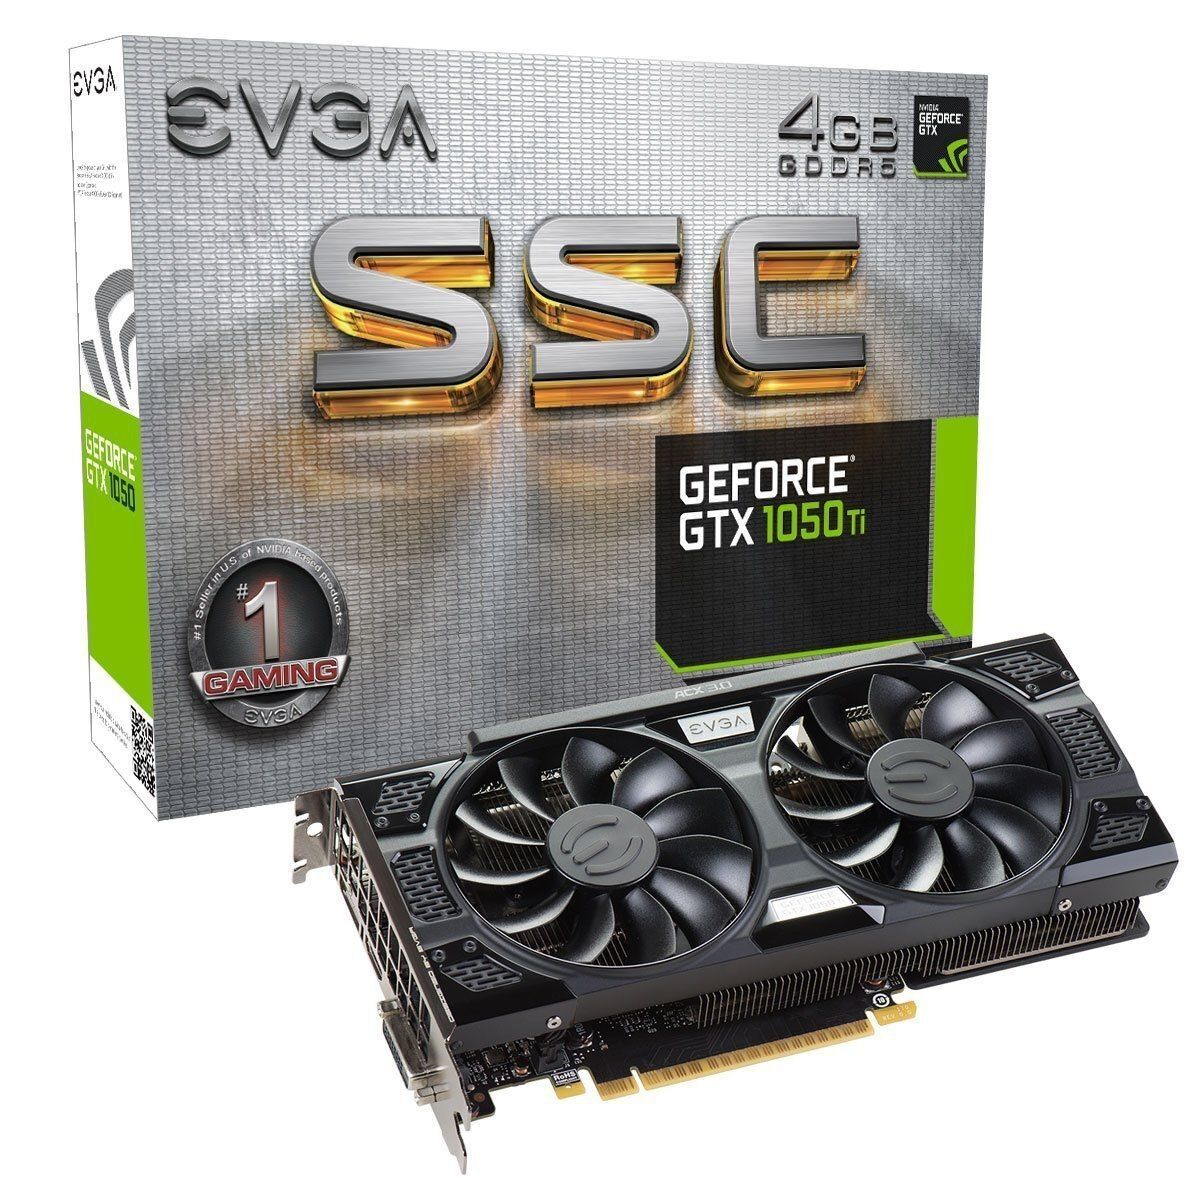 EVGA GeForce GTX 1050 Ti SSC GAMING ACX 3.0, 4GB GDDR5 DX12 Graphics Card 3